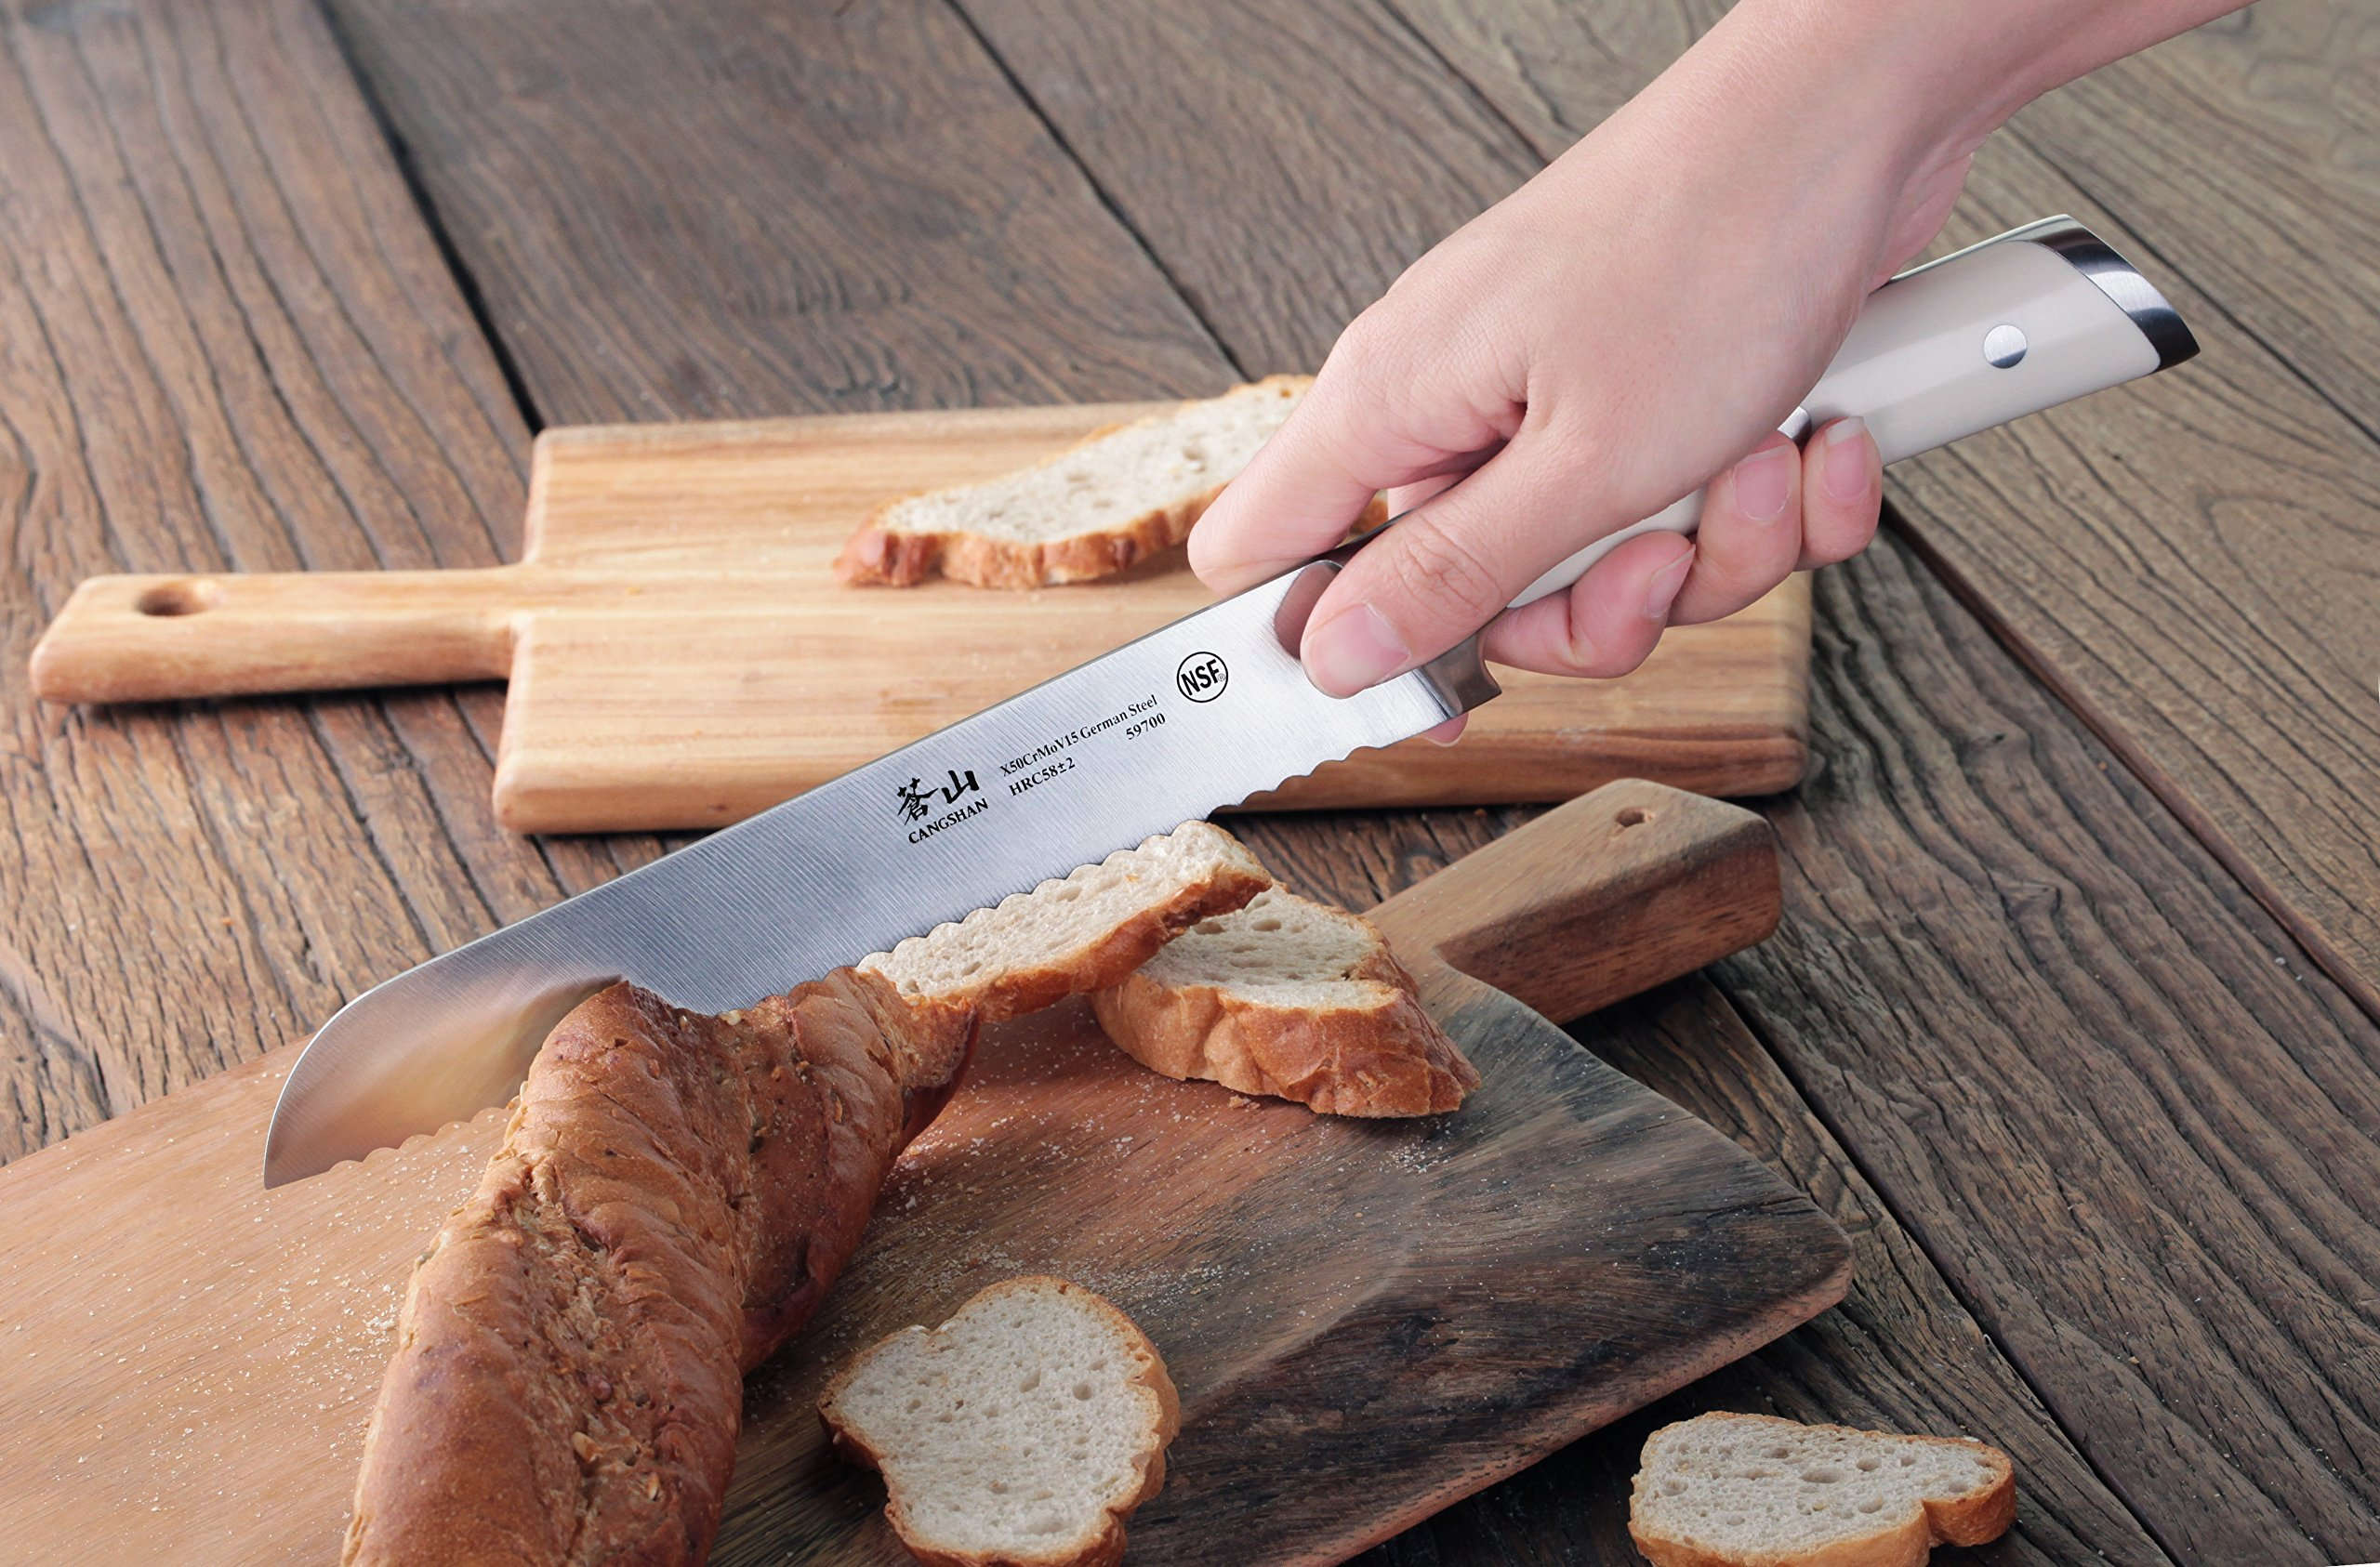 Cangshan S1 Series 59700 German Steel Forged Bread Knife, 8-Inch 6 Patent Pending Design knives that focuses on ergonomics handle with unique creme color Well balanced 5.5-inch handle and 8 blade X50Cr15MoV German Steel with HRC 58 +/- 2 on the Rockwell Hardness Scale